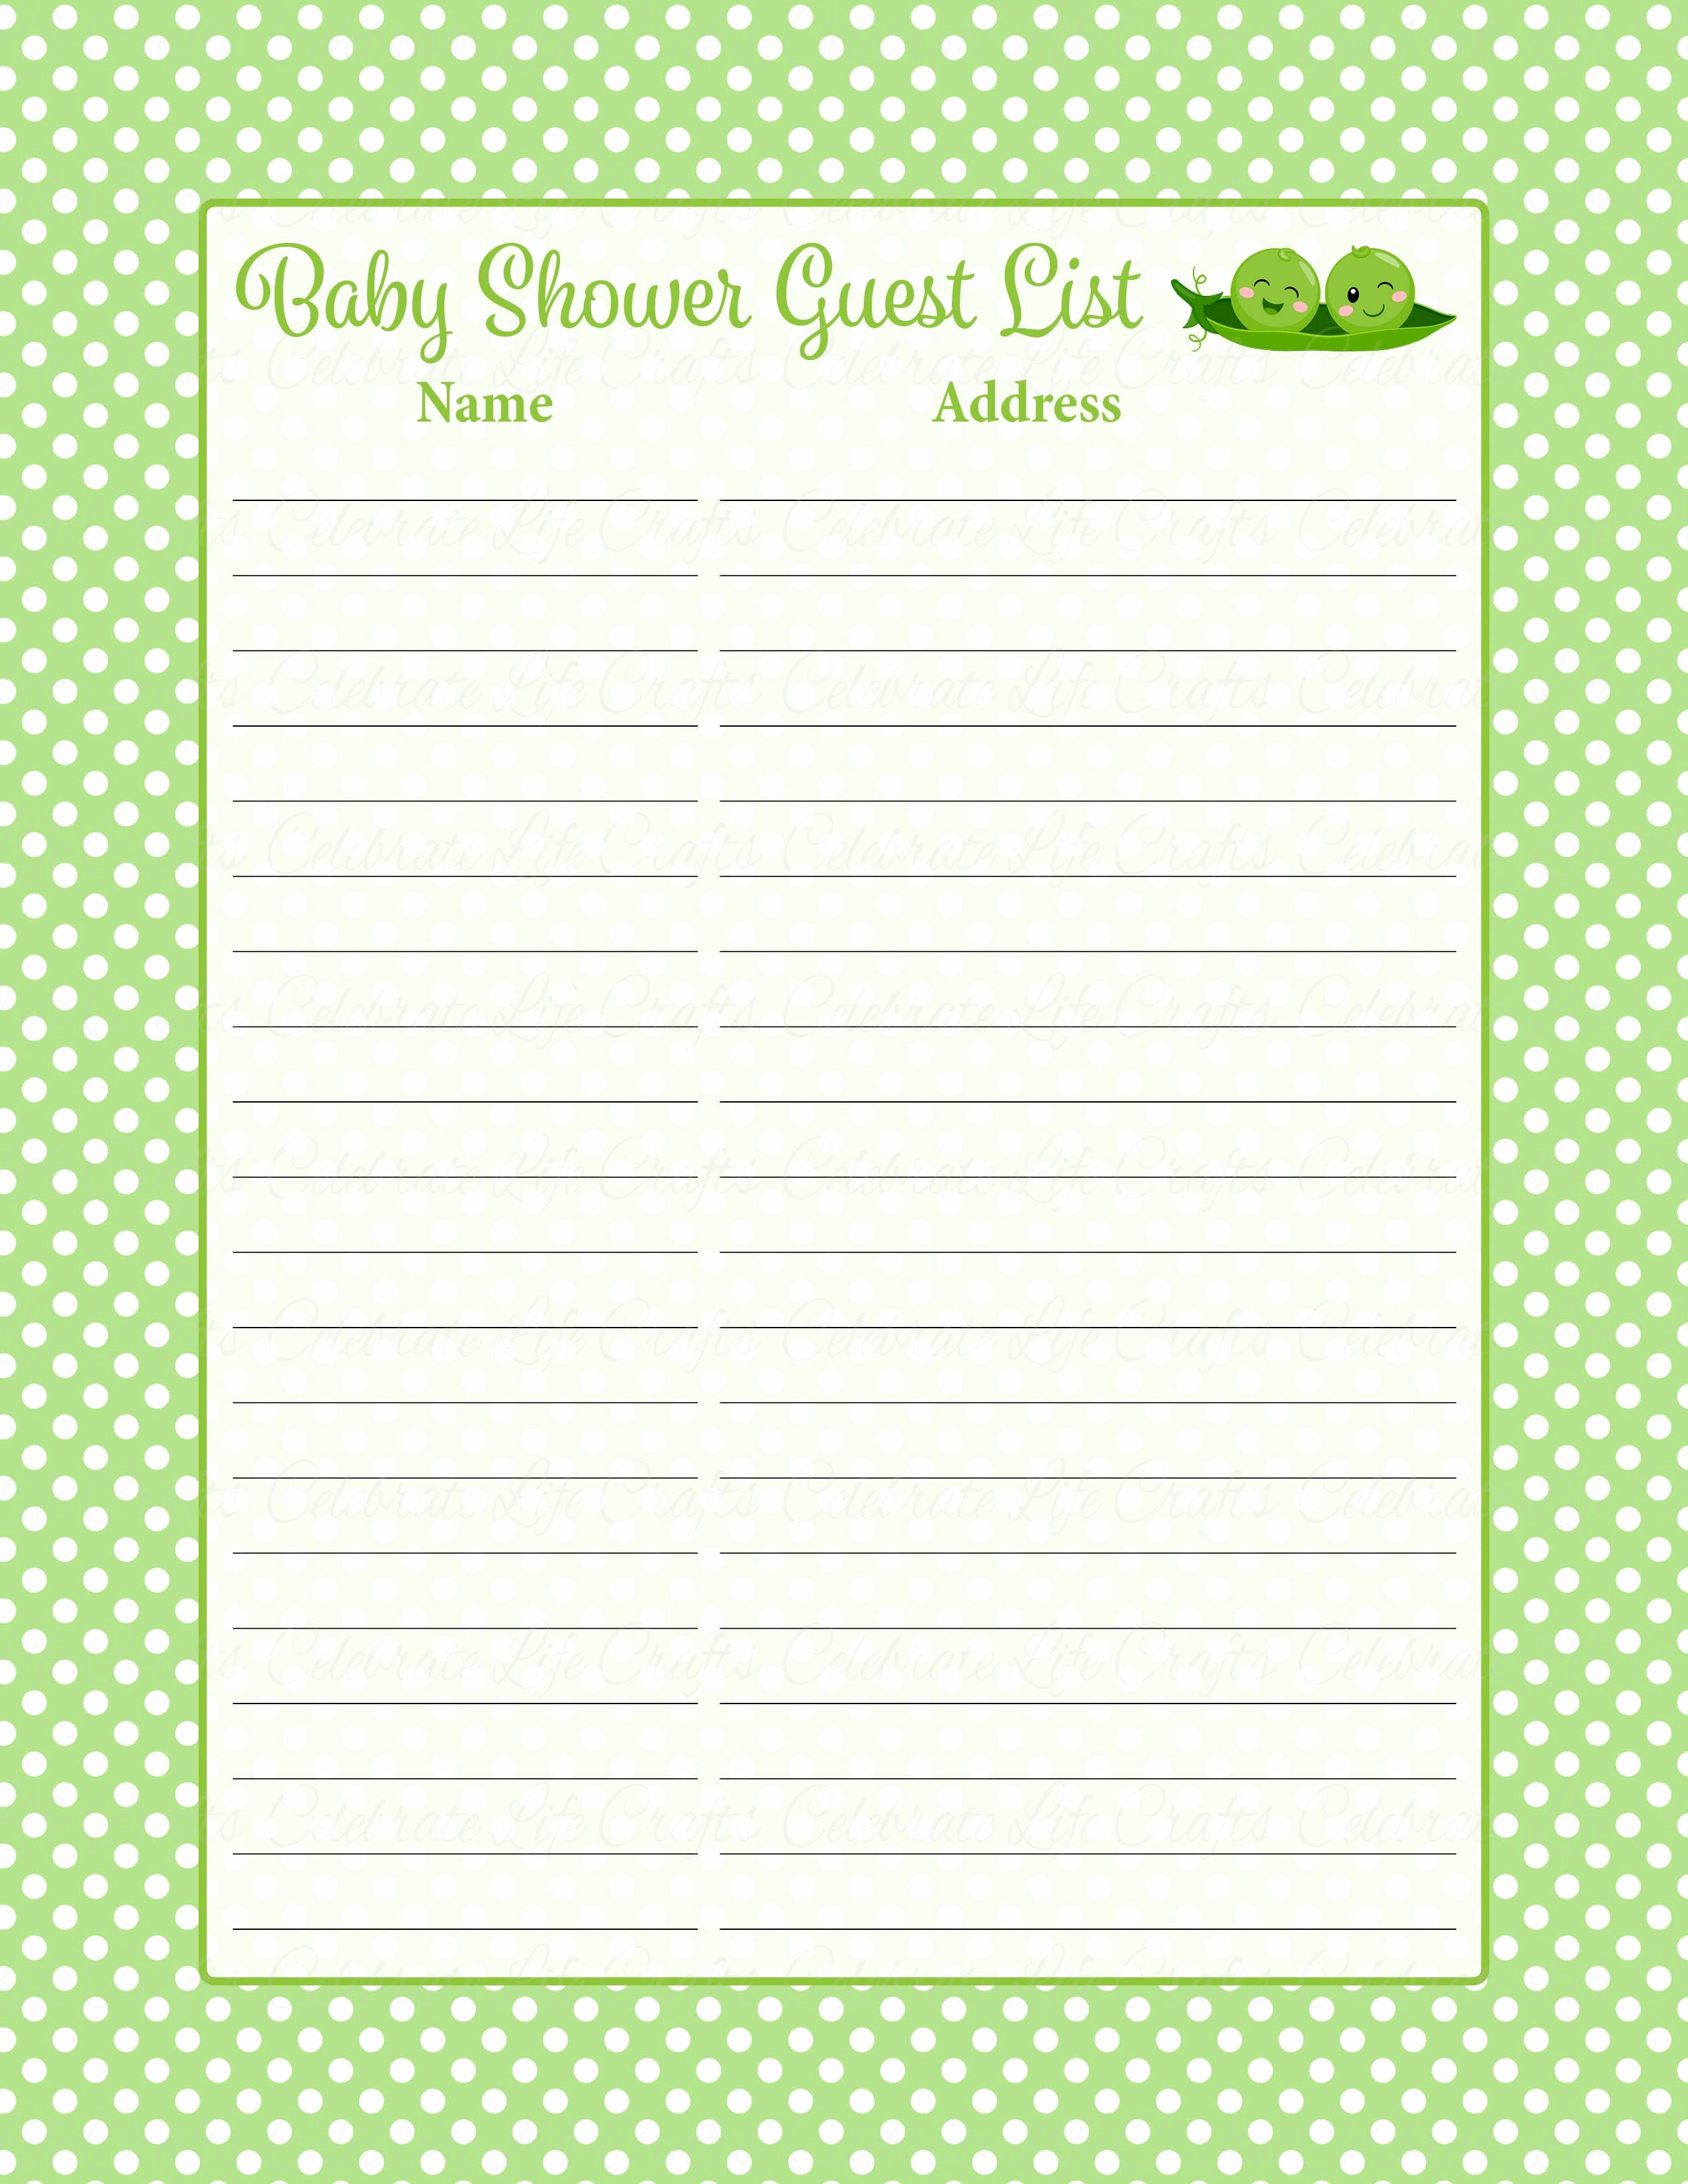 Printable Baby Shower Guest List Awesome Baby Shower Guest List Set Peas In A Pod Baby Shower